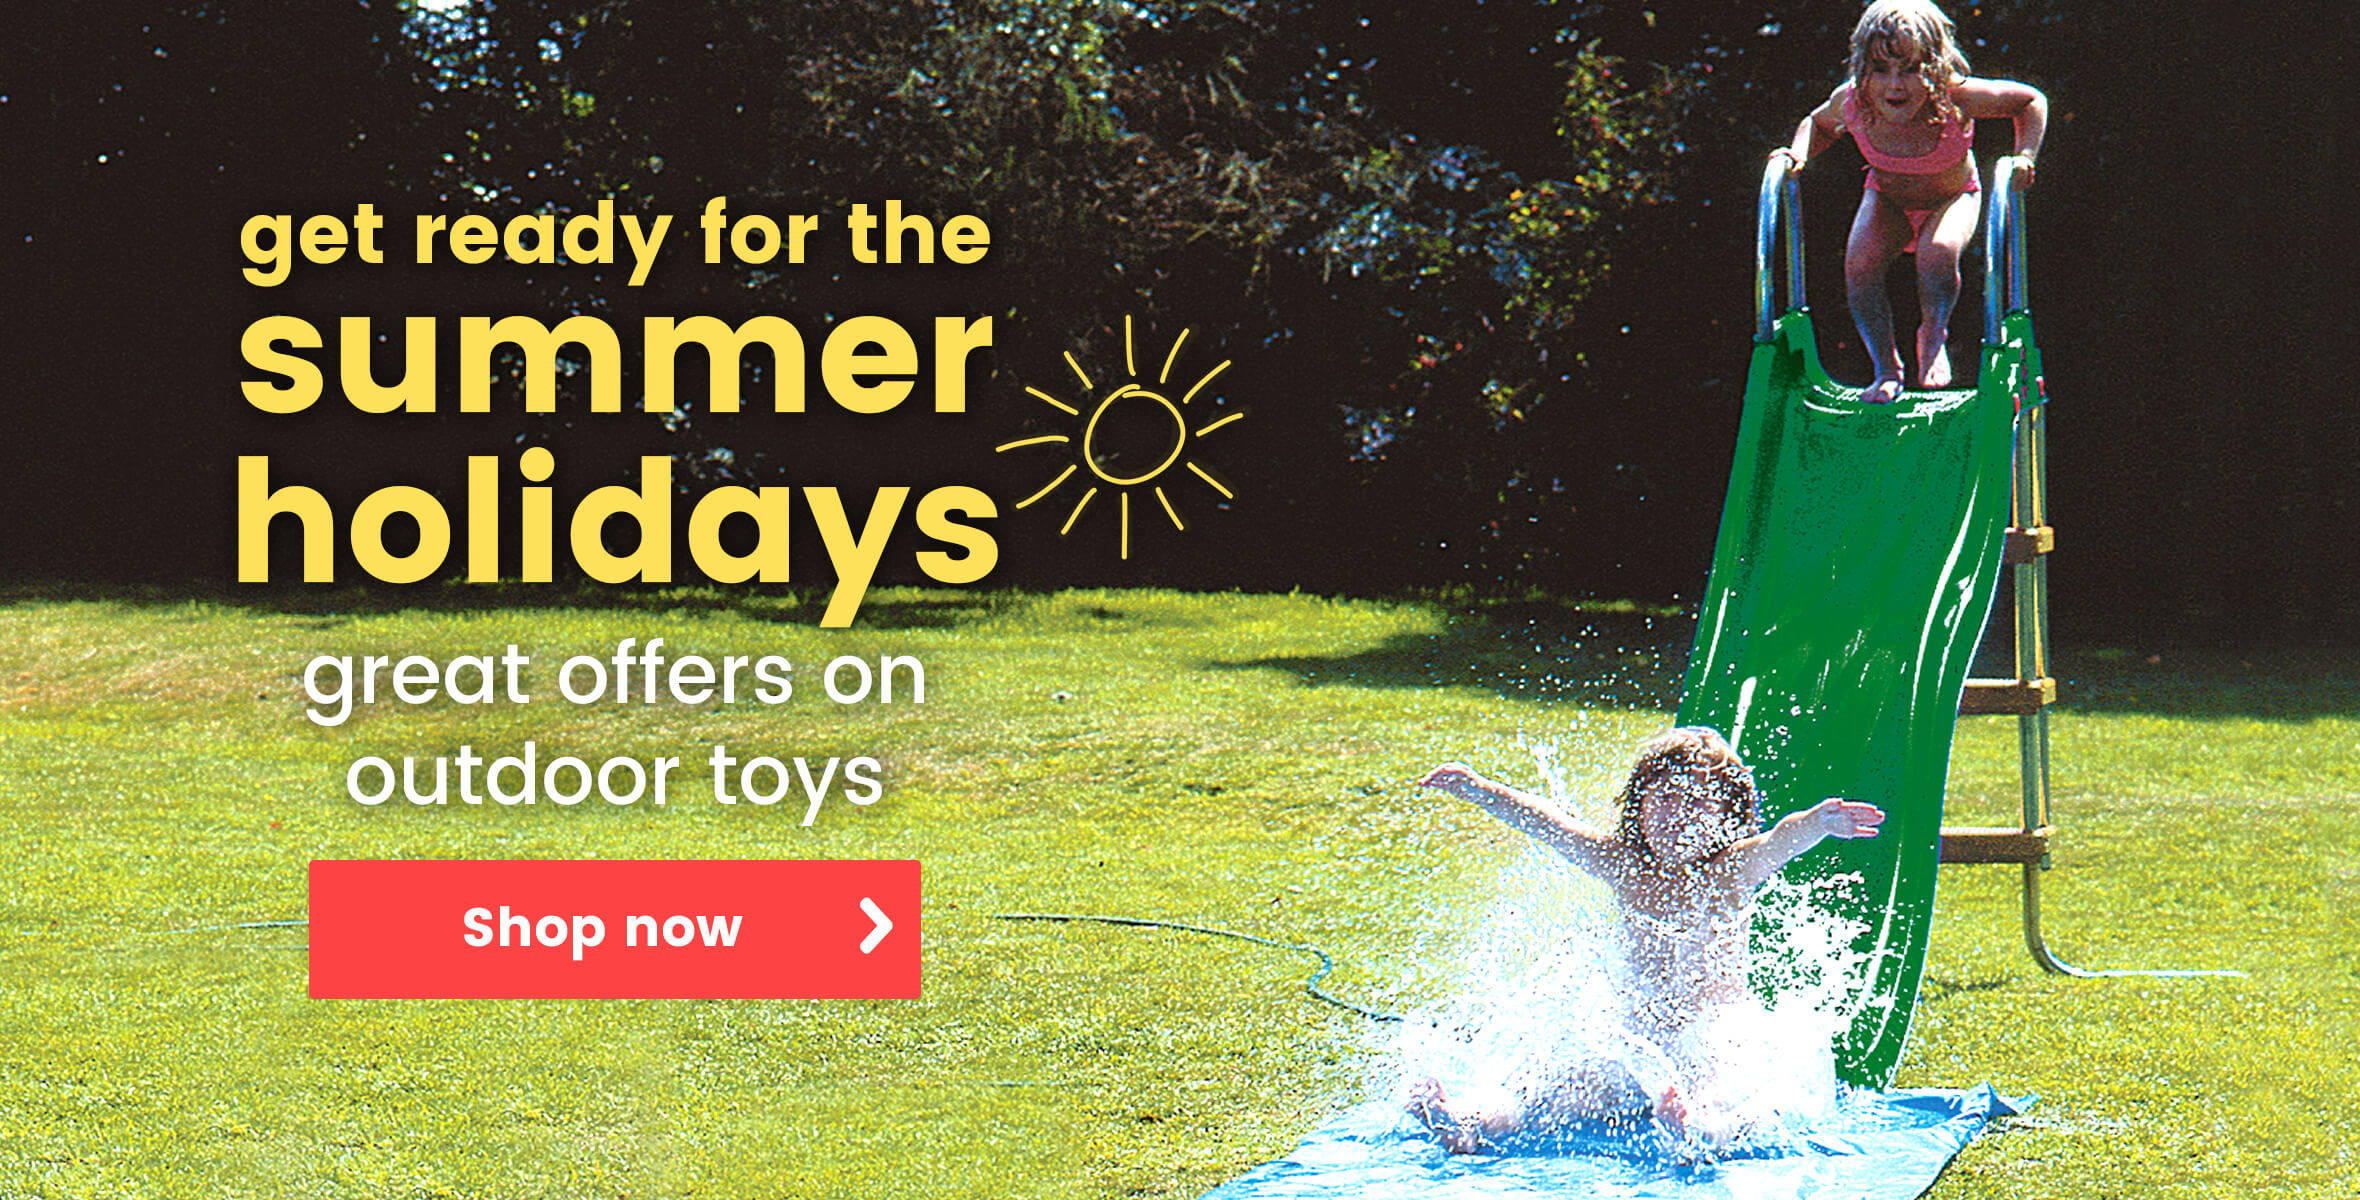 Great offers on outdoor toys